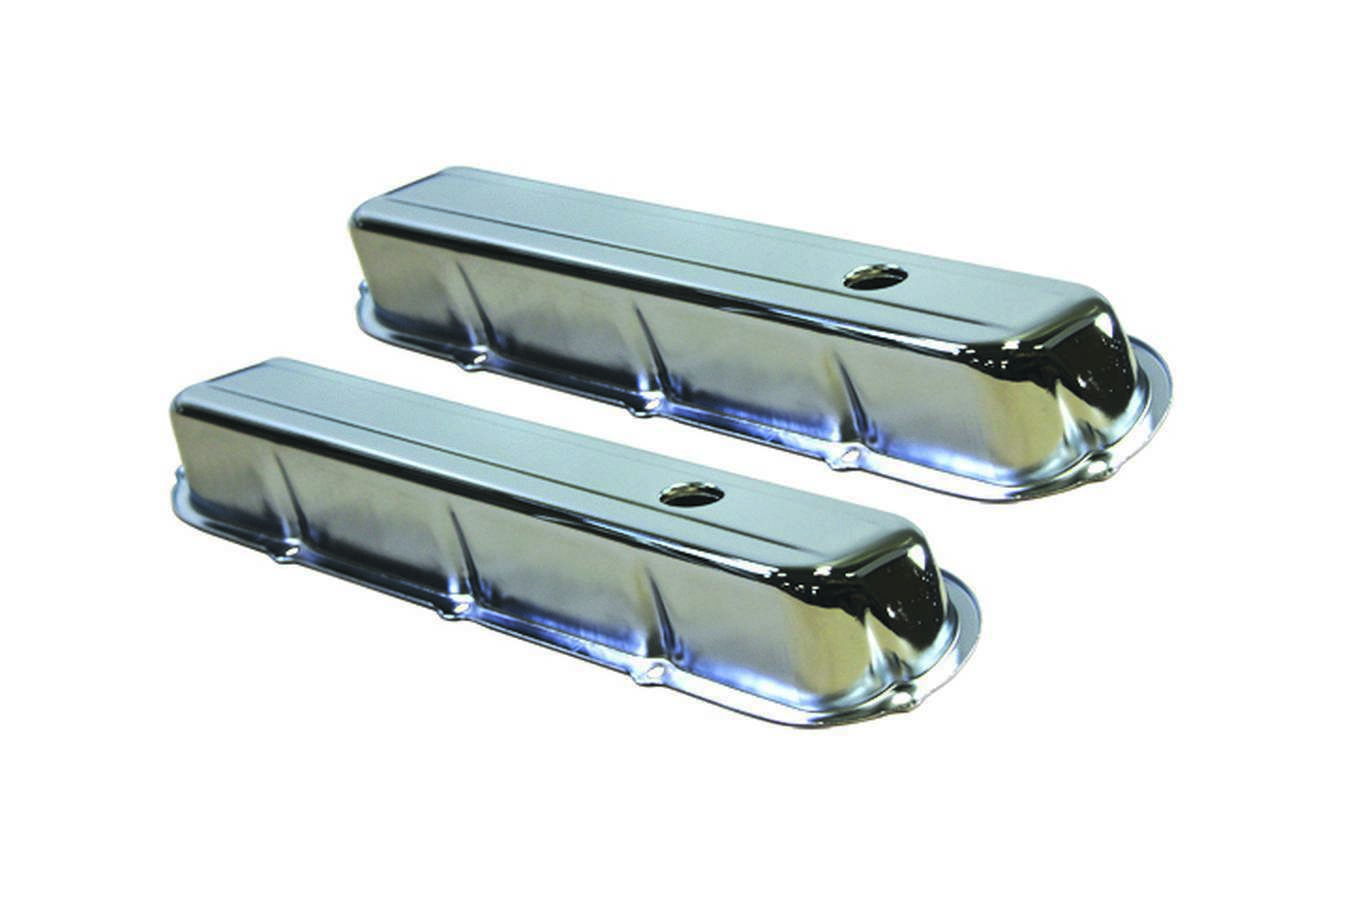 Specialty Products 7553 Valve Cover, Stock Height, Breather Holes, Steel, Chrome, Cadillac V8, Pair